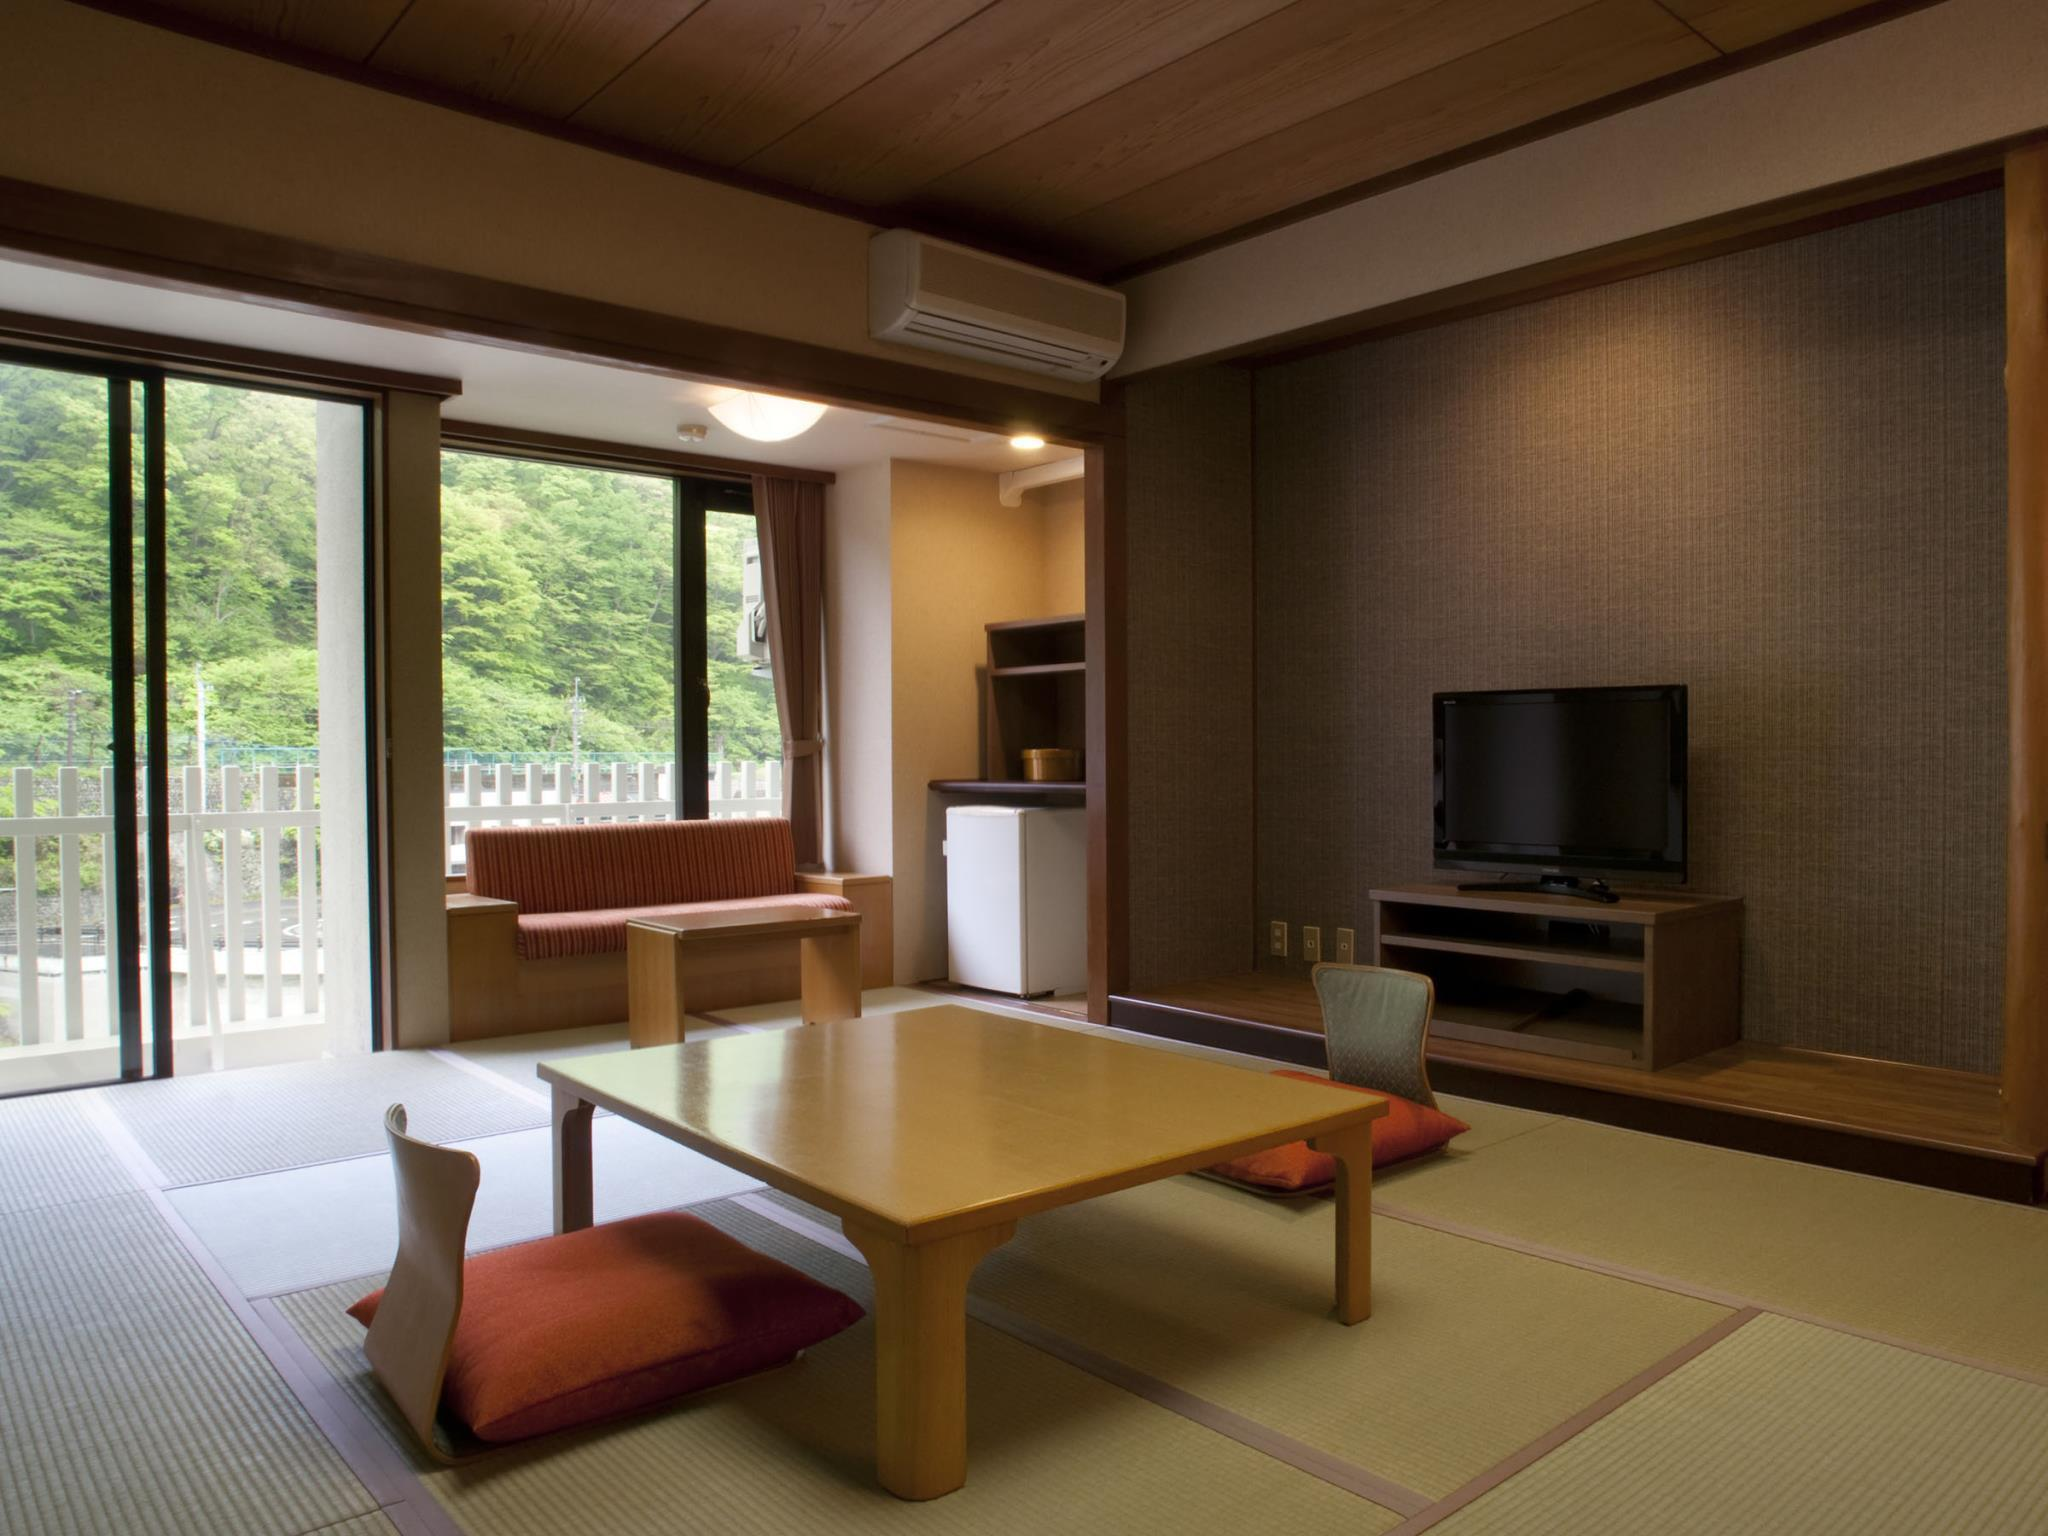 Yuraku Japanese Style Room with 12 Tatami - Smoking